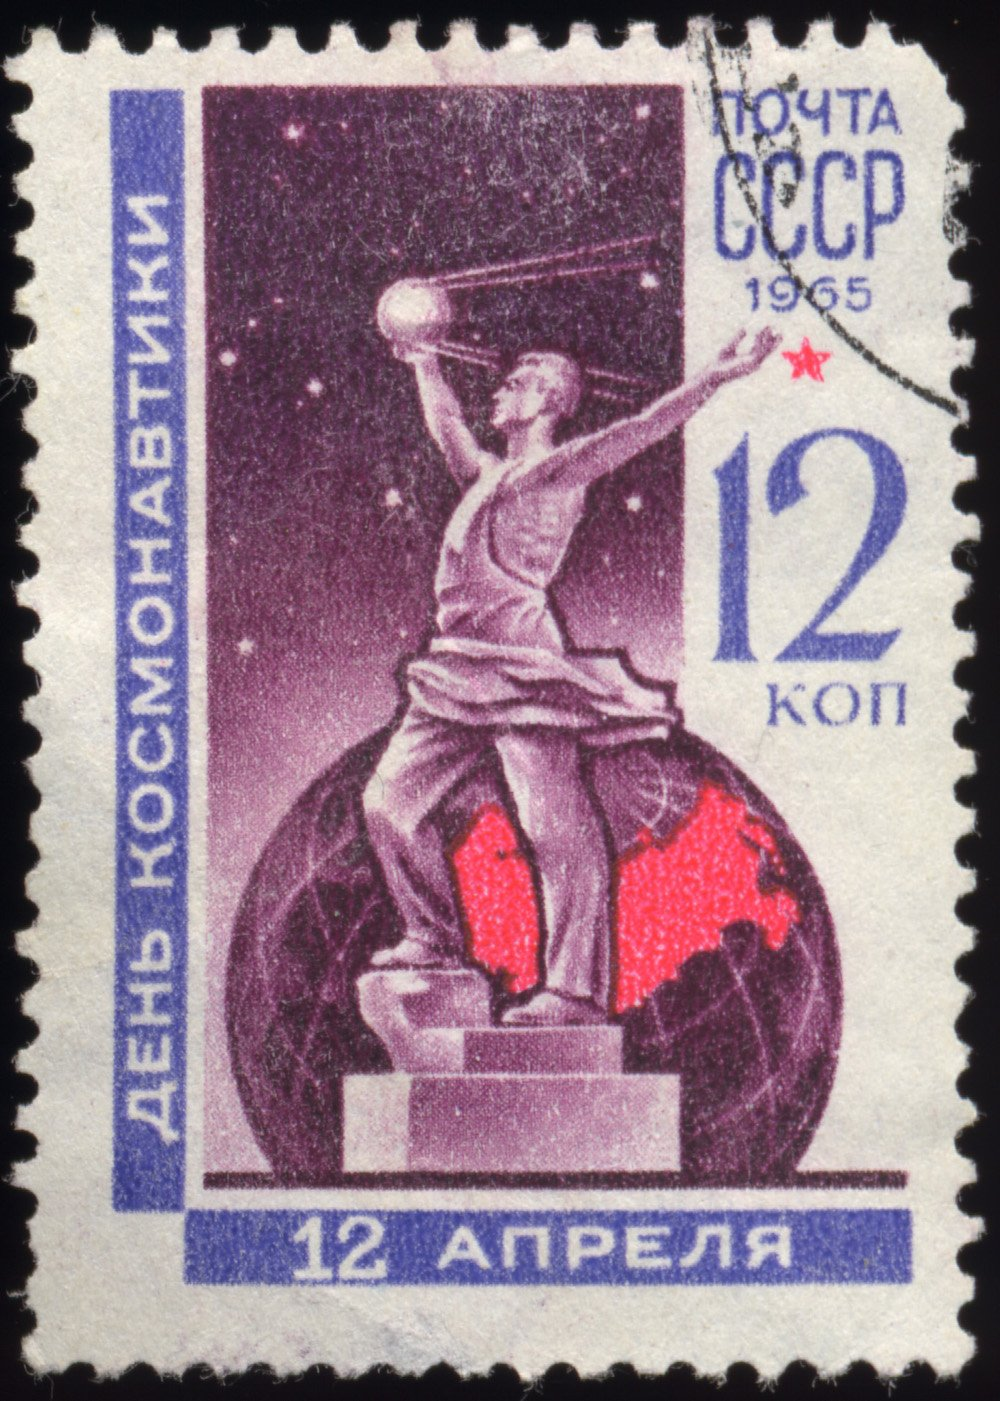 Soviet stamp carrying the image of the Sputnik monument printed in honour of Cosmonautics Day